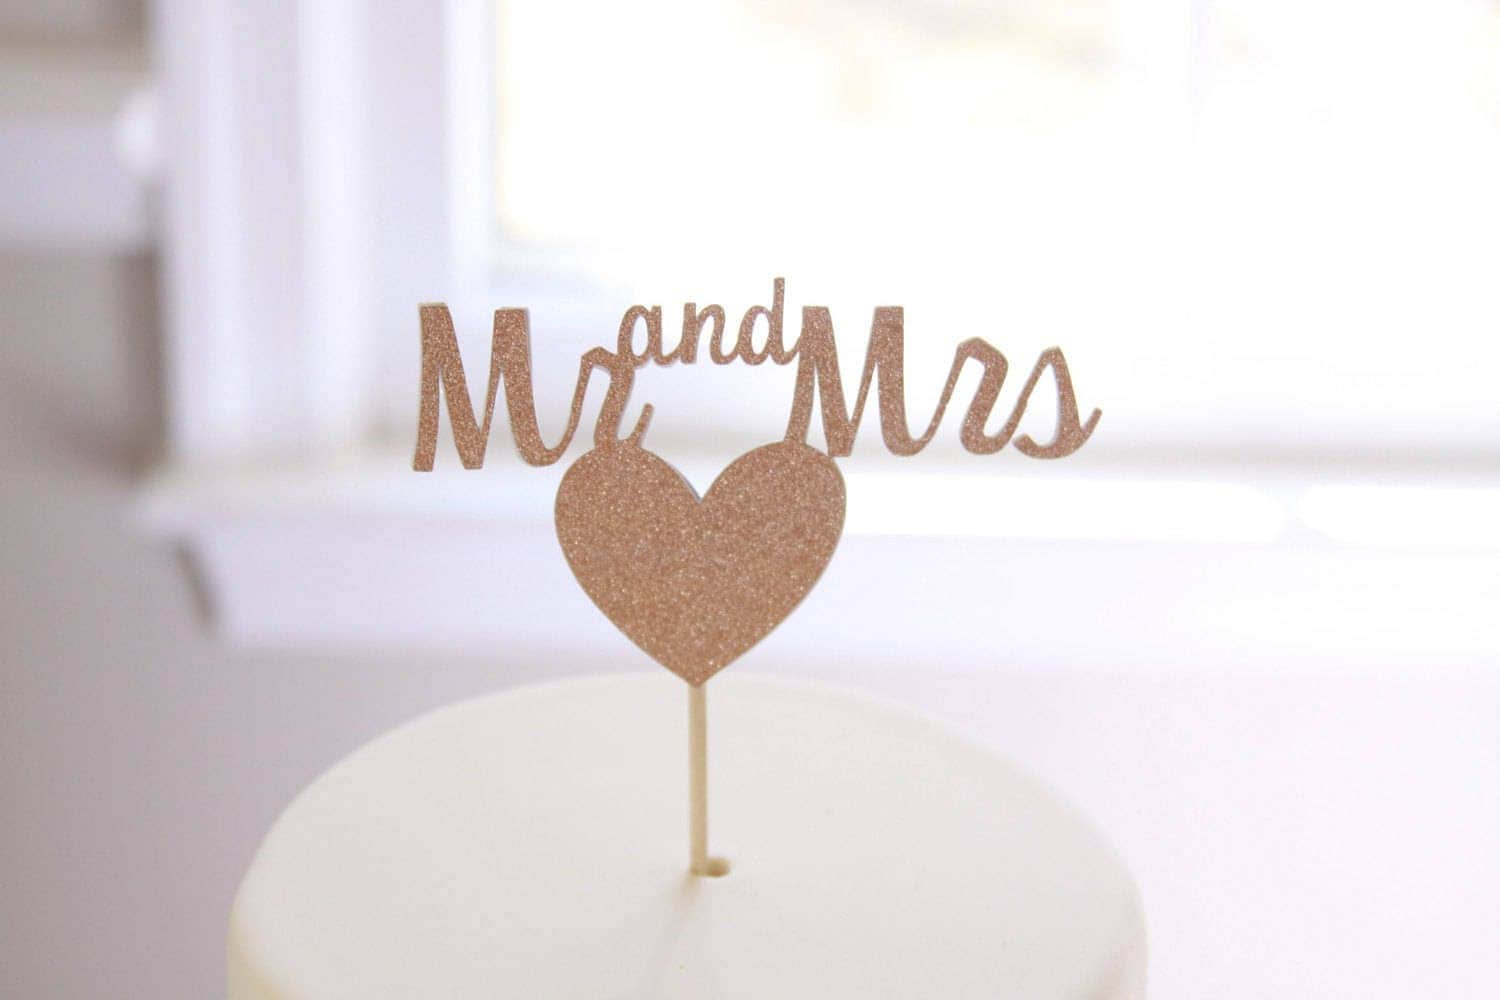 mr and mrs topper wedding cake topper rose gold glitter cake topper wedding cake ideas sparkly sweetheart table decor silver and gold